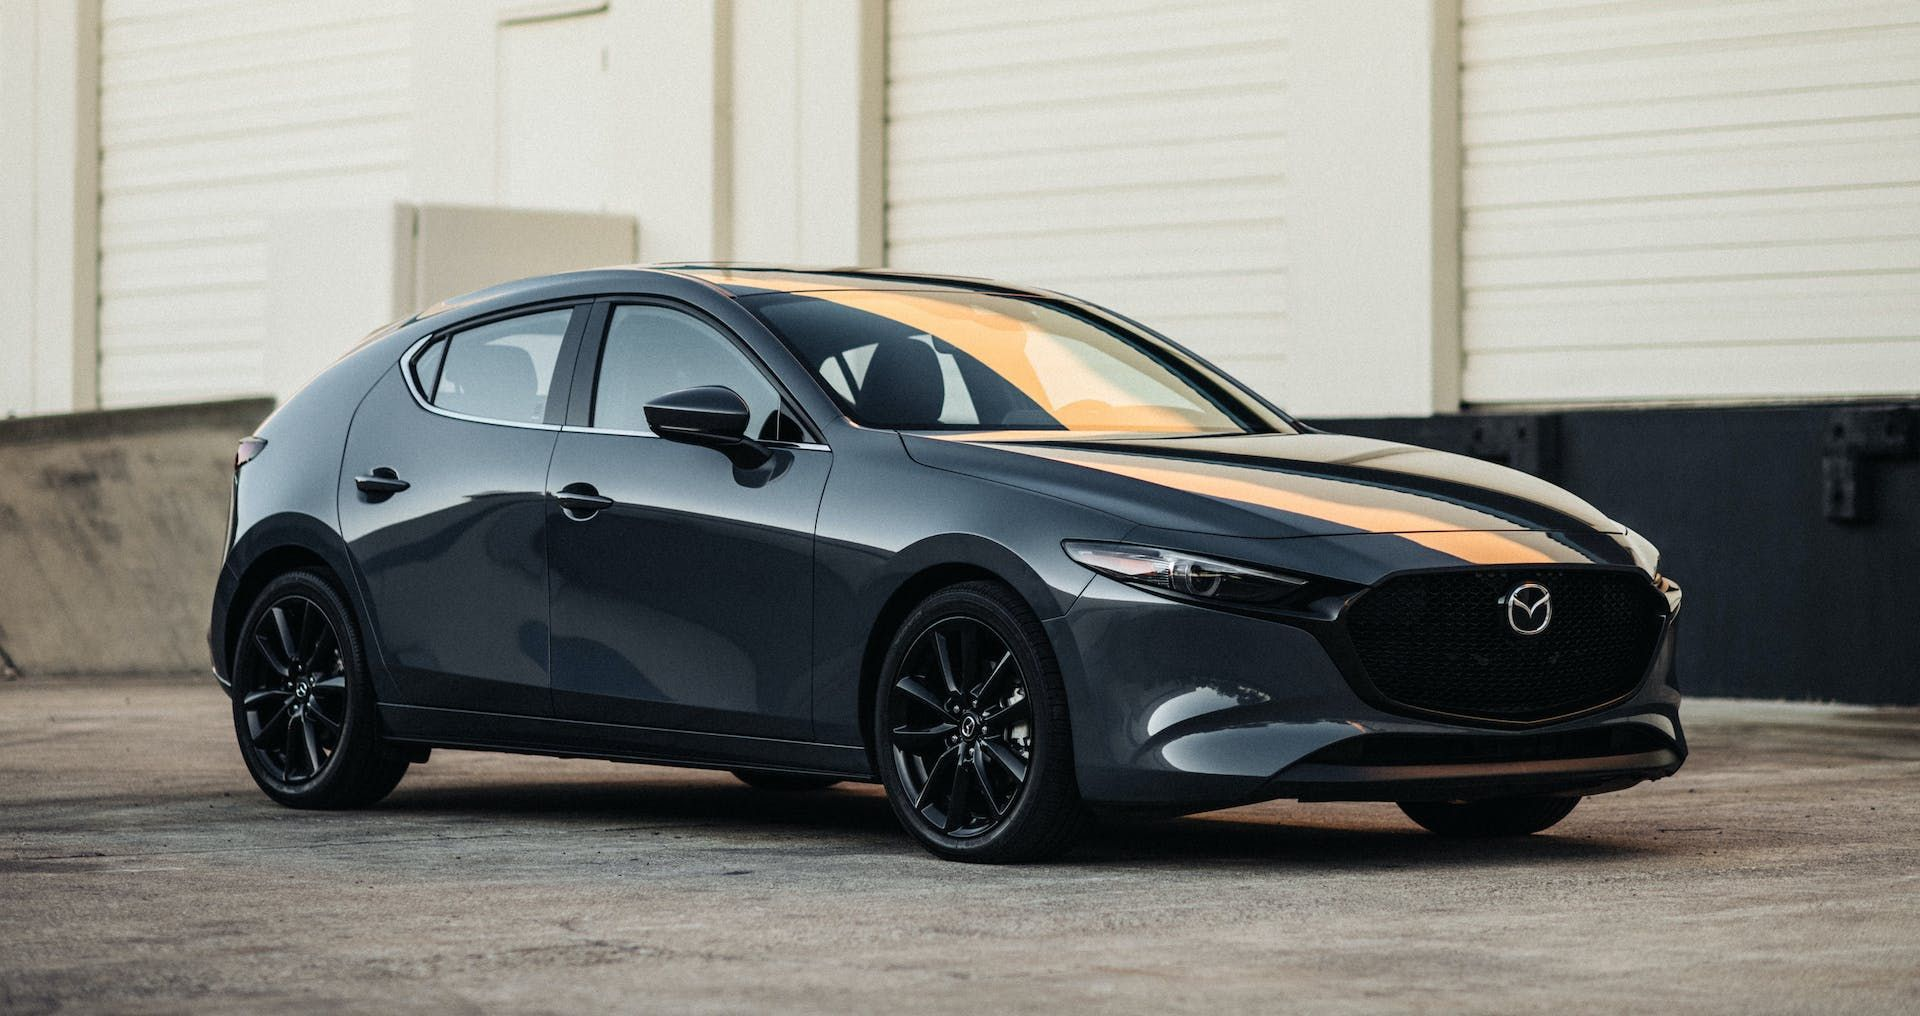 Hear The 2021 Mazda3 Turbo Before We See It In July The Drive In 2020 Mazda 3 Hatchback Mazda Hatchback Mazda 3